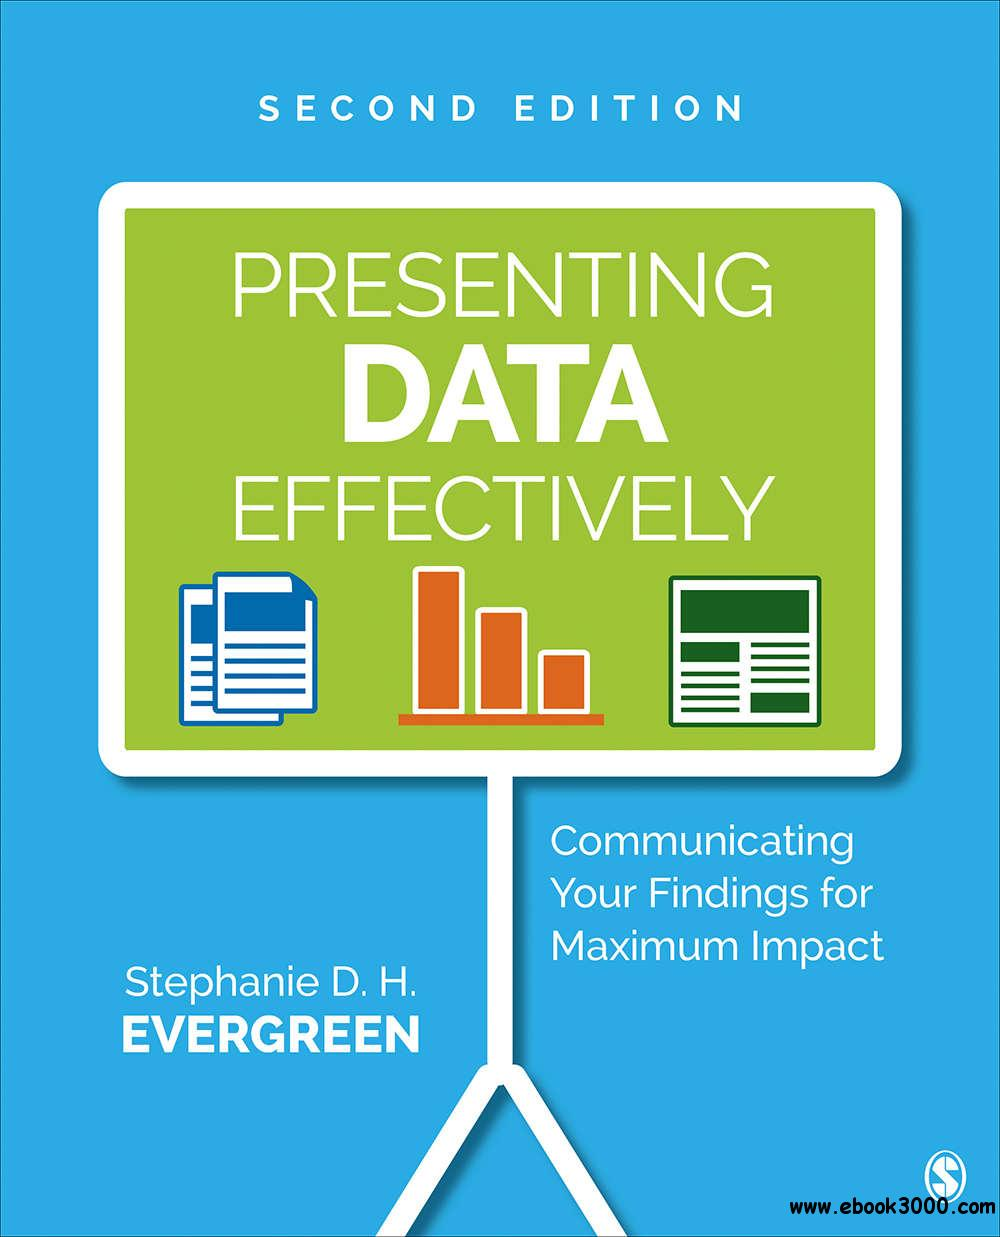 Presenting Data Effectively: Communicating Your Findings for Maximum Impact, Second Edition